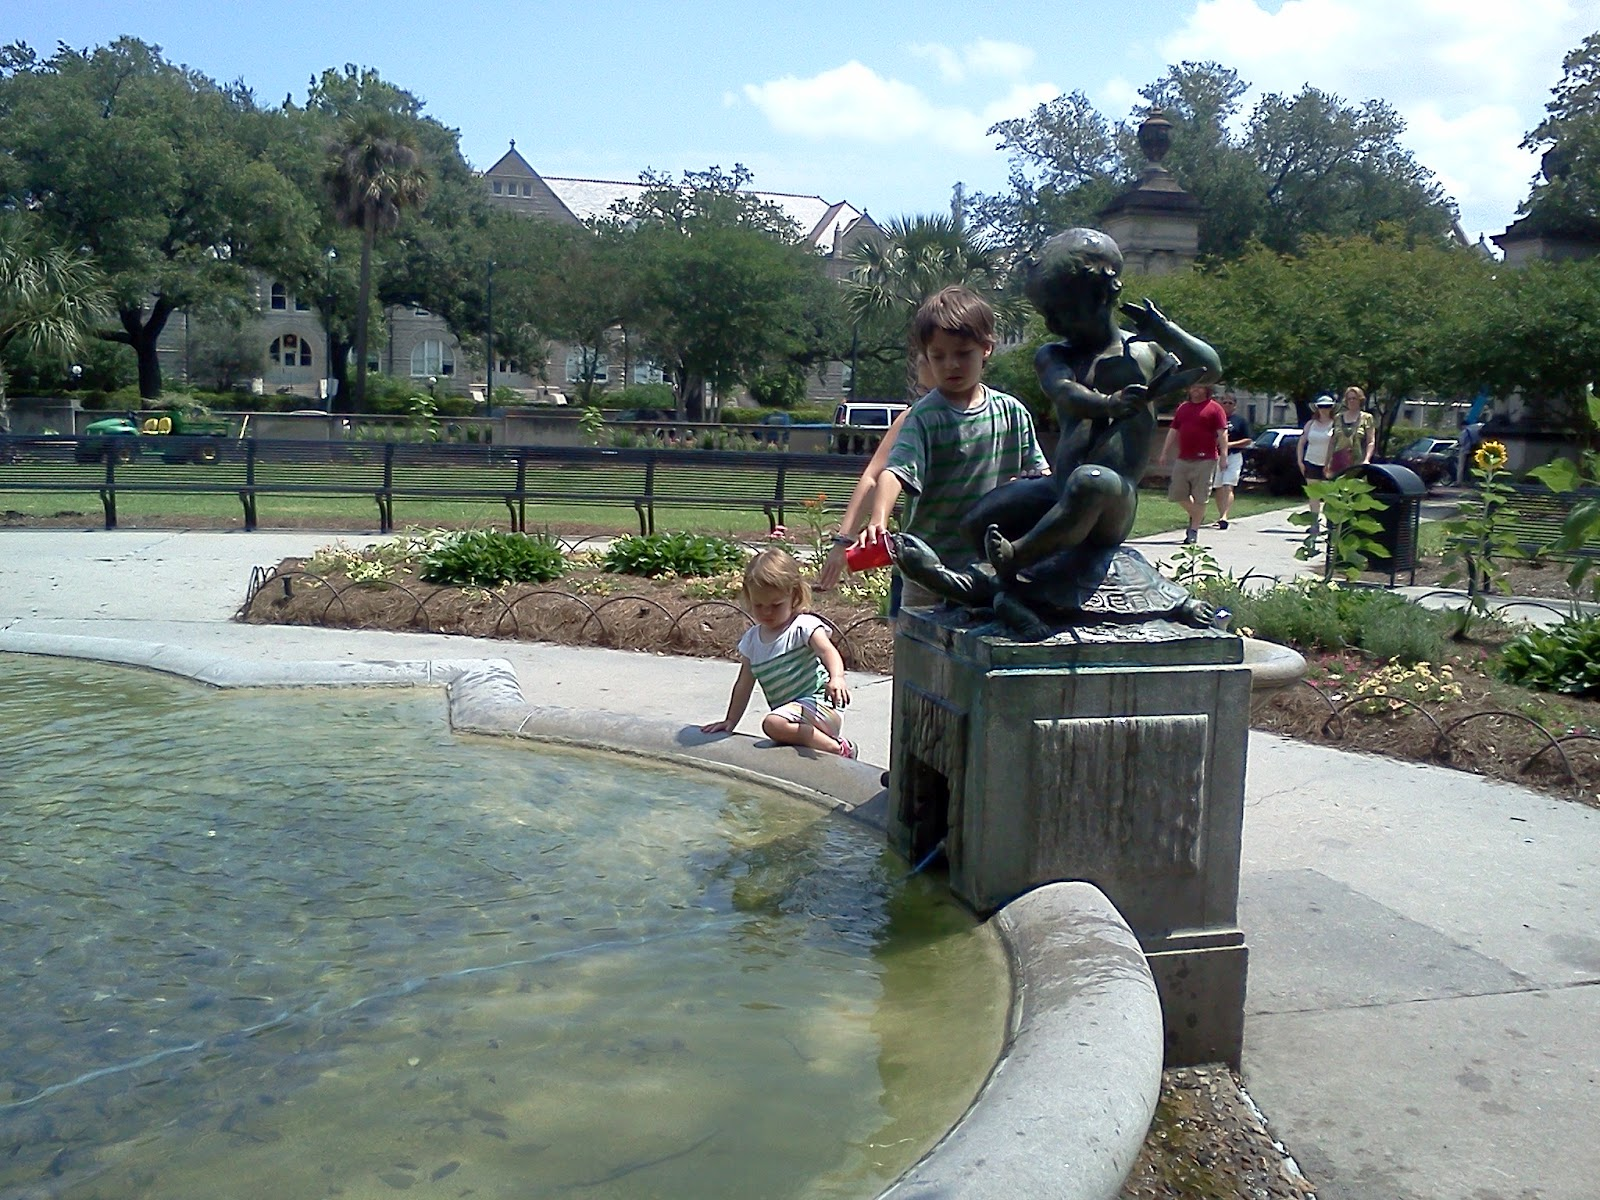 Fountain at entrance of Audubon Park